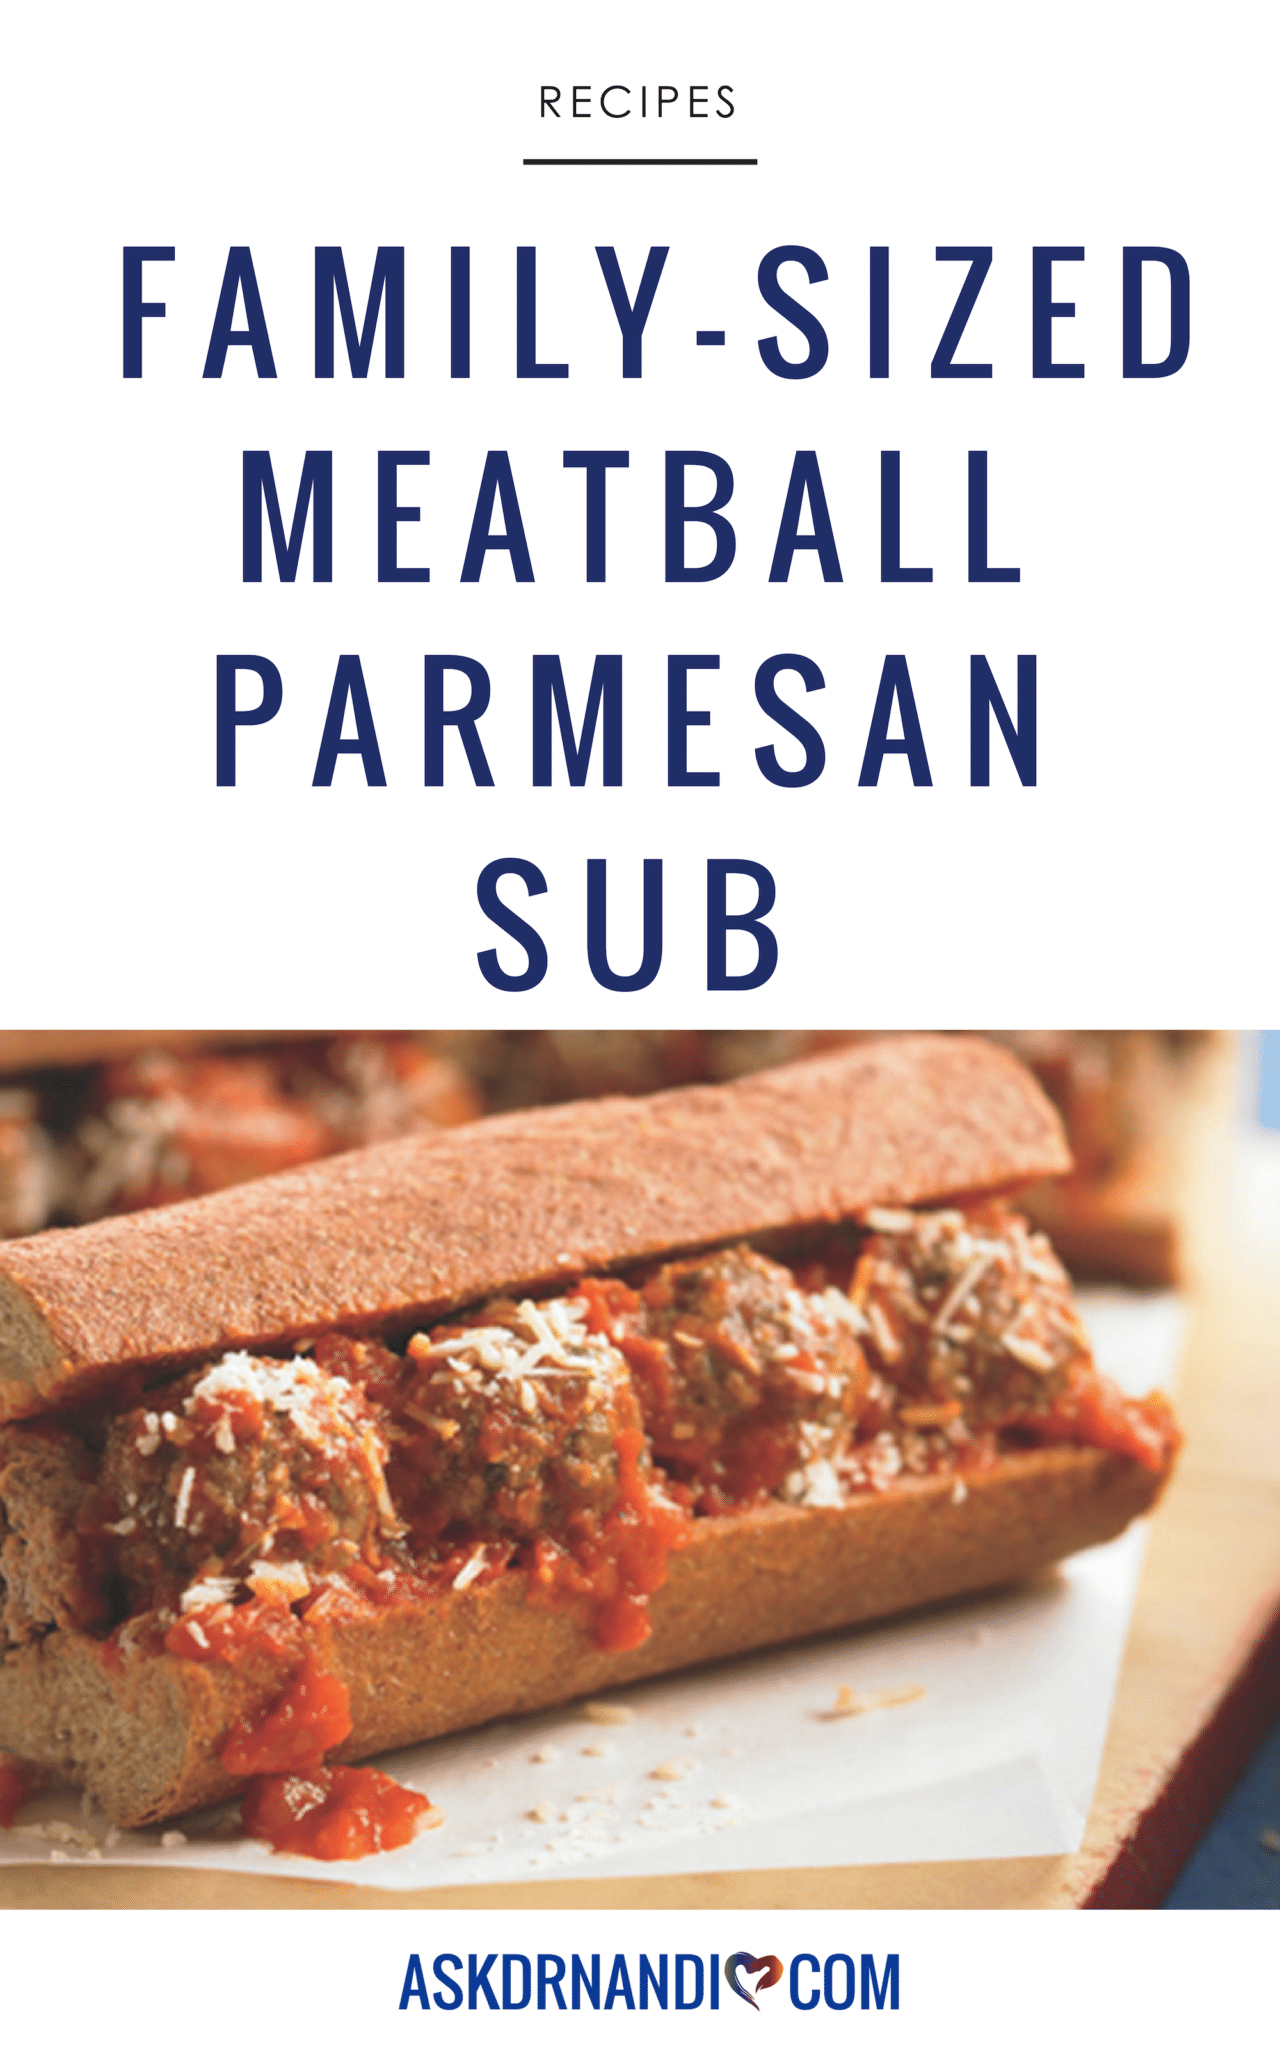 Meatball Lovers' Must-Have Family-Sized Meatball Parmesan Sub